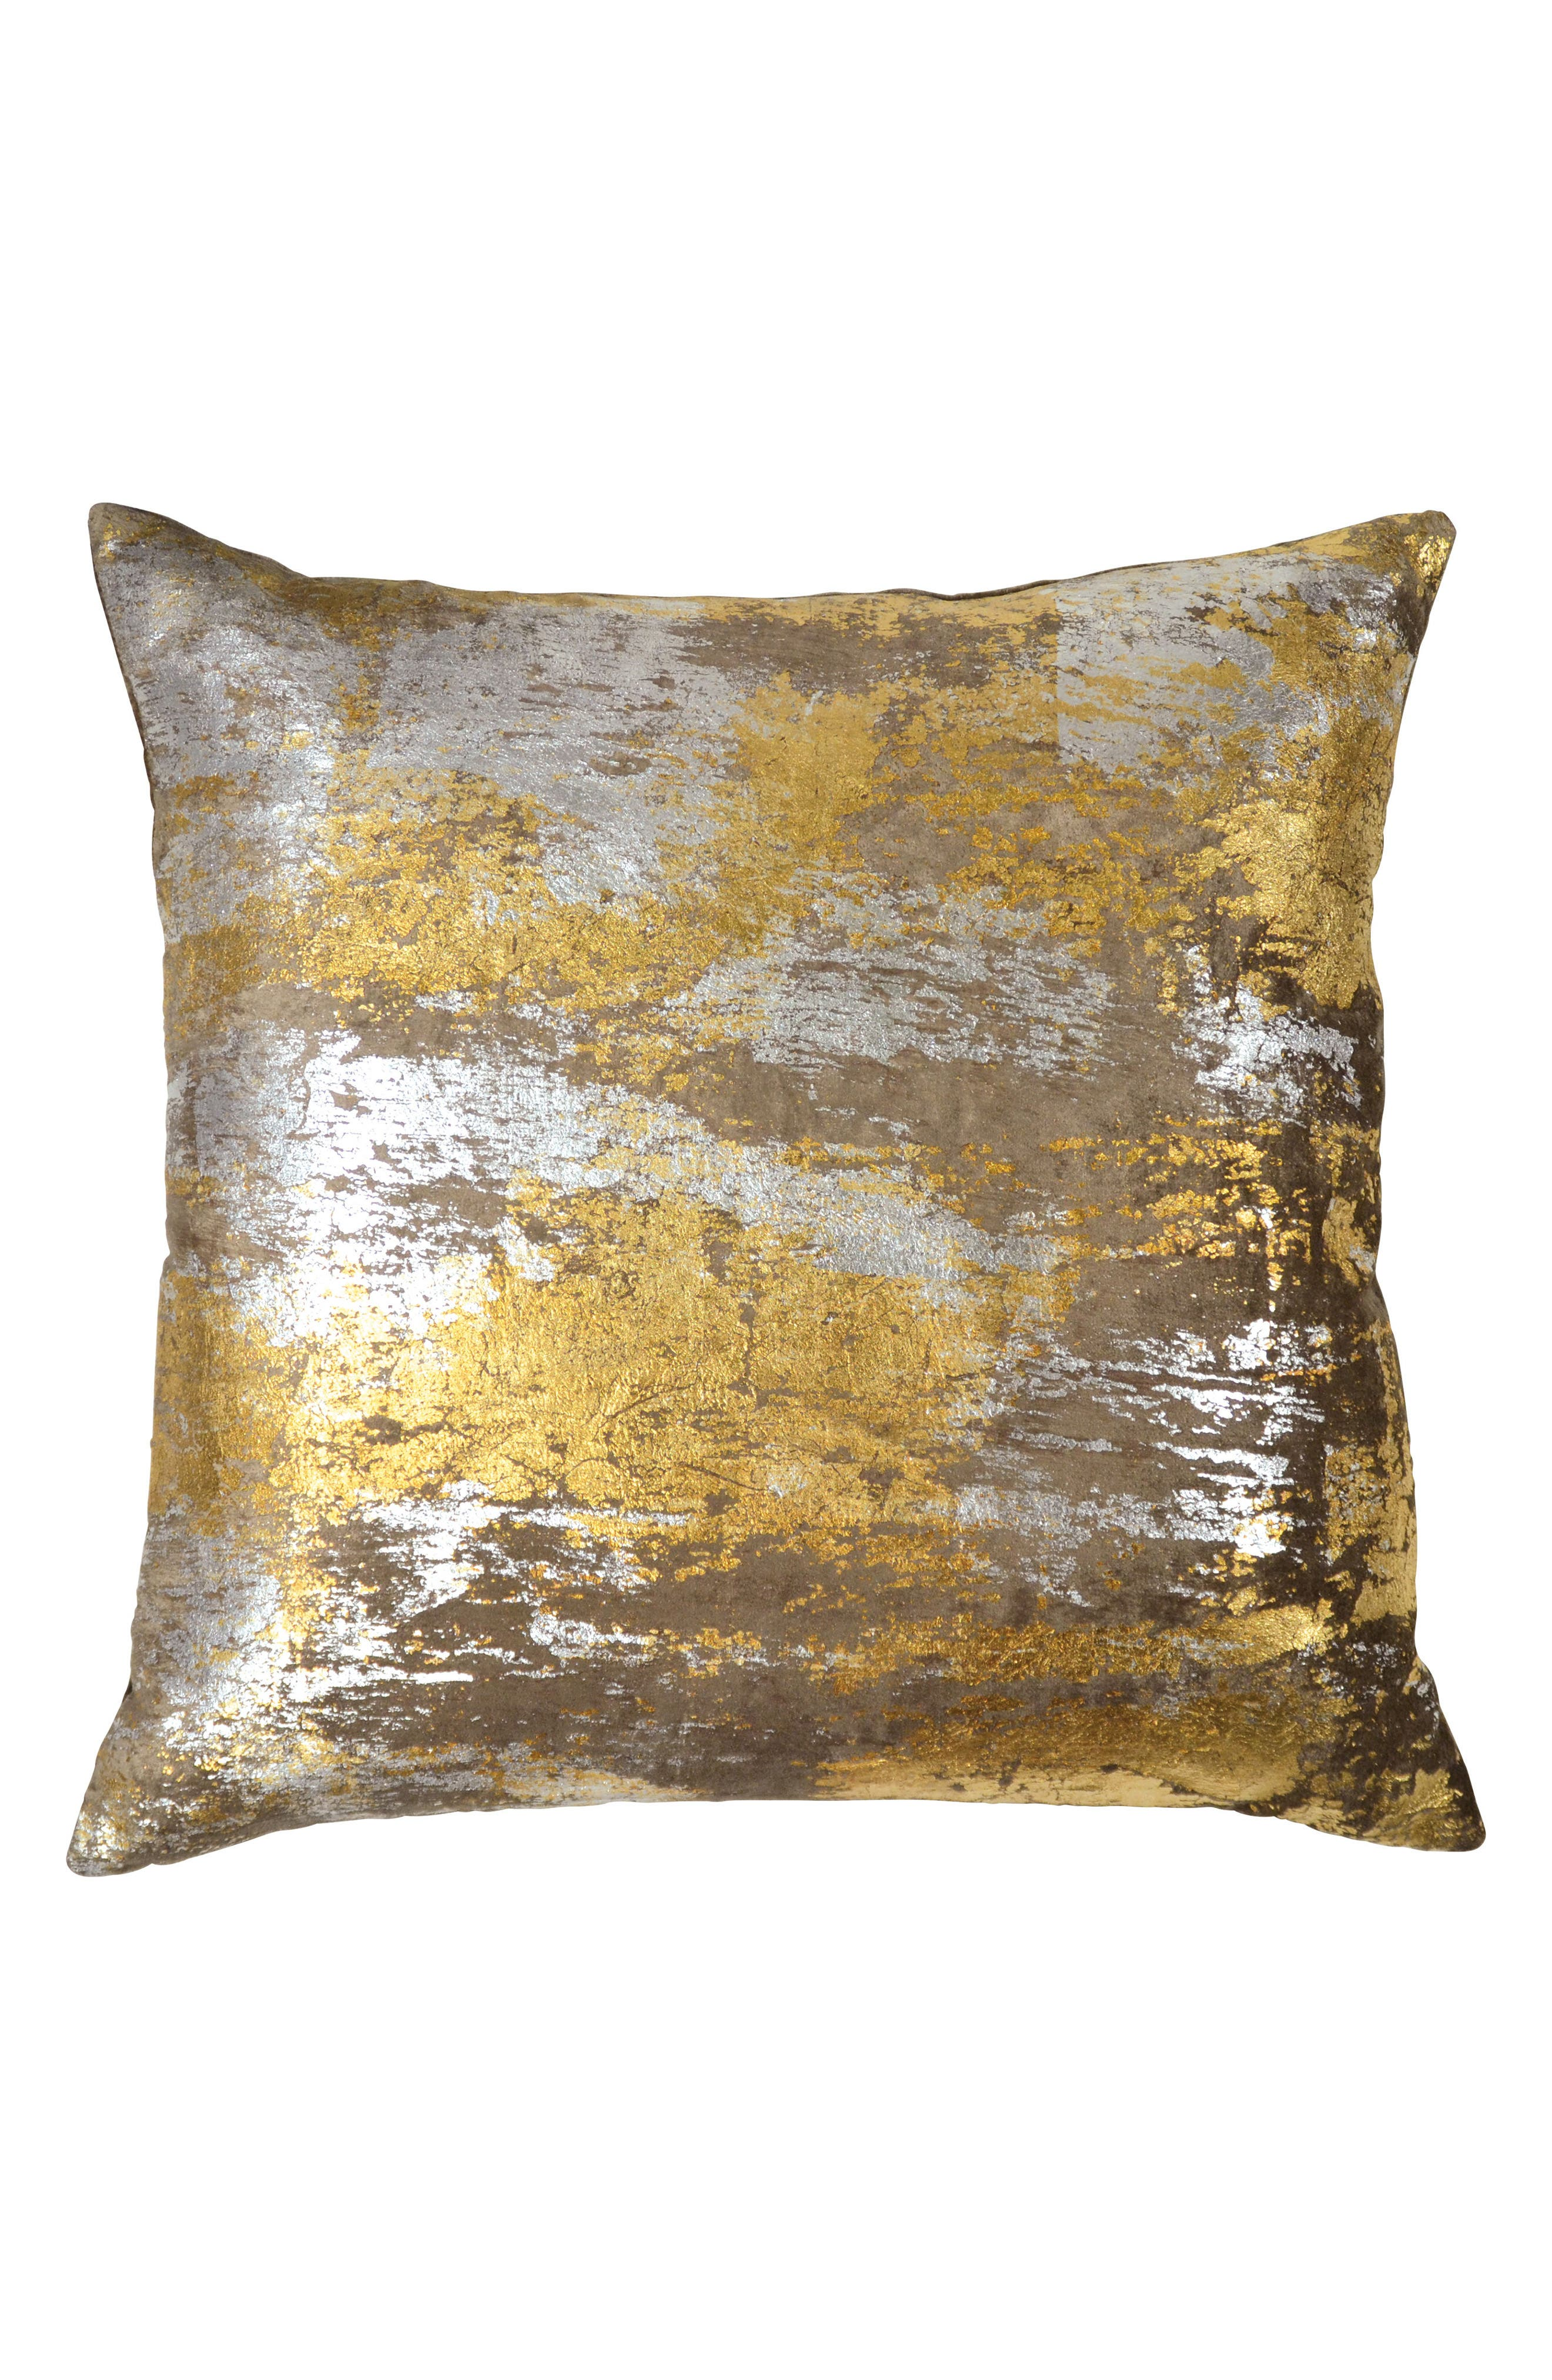 MICHAEL ARAM, Distressed Metallic Accent Pillow, Main thumbnail 1, color, SILVER